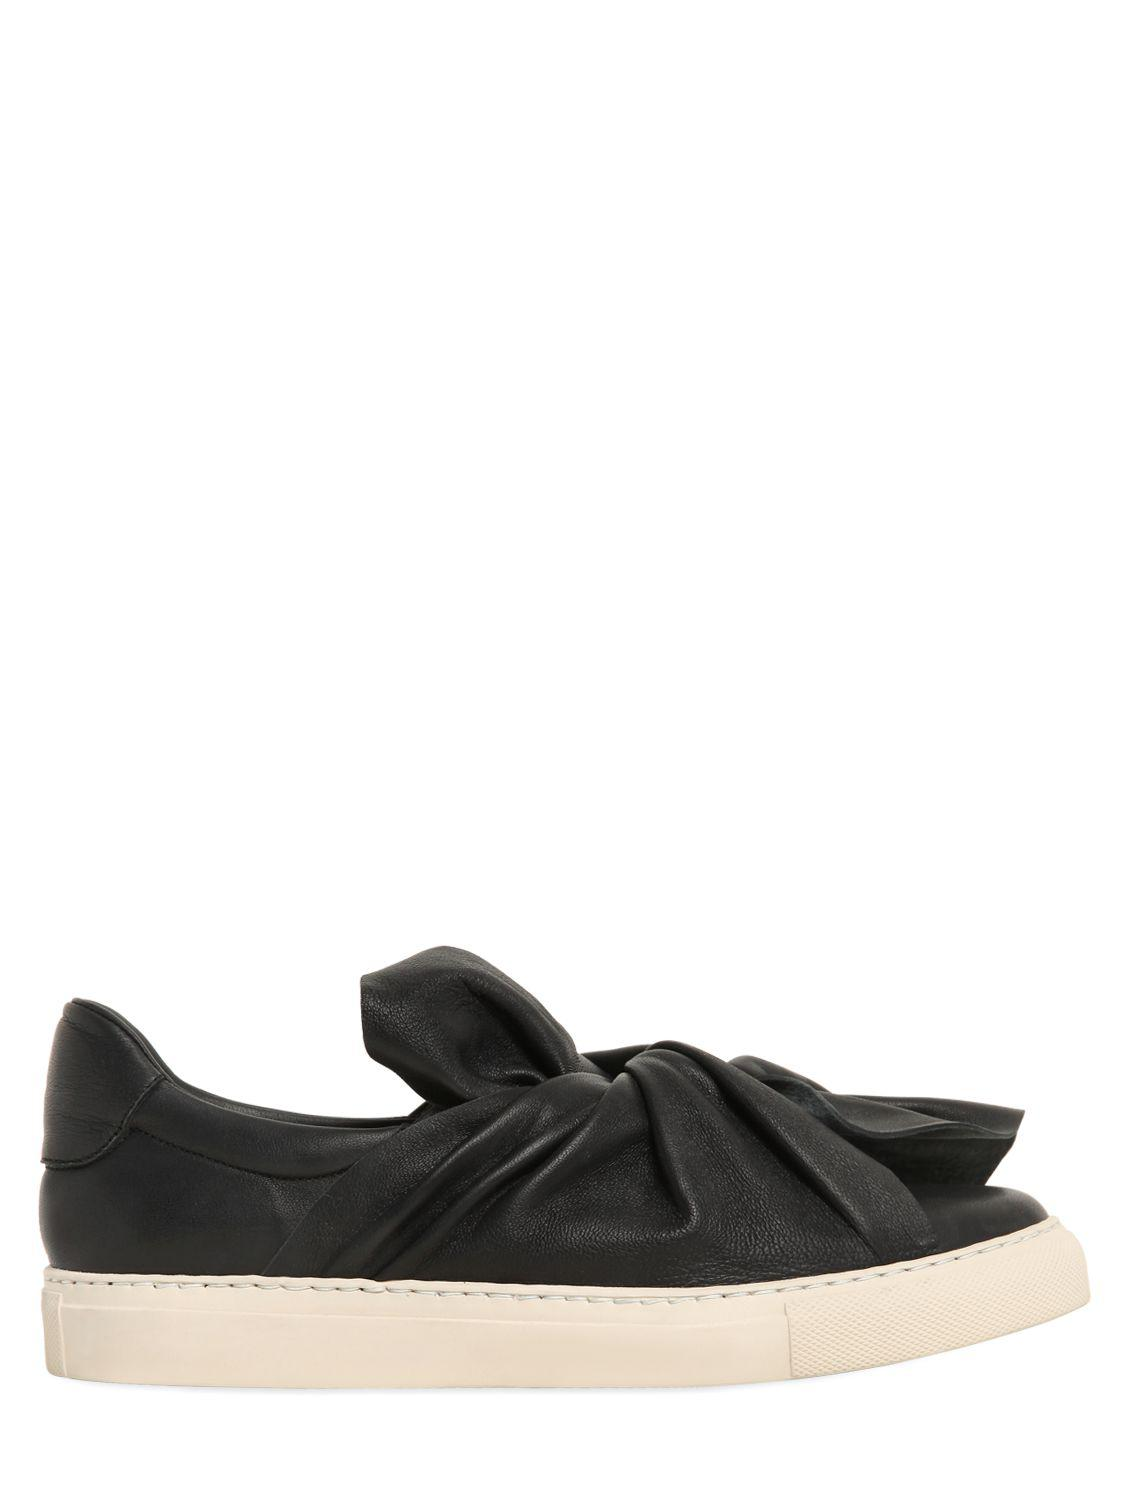 PORTS 1961 Baskets En Cuir Marque Discount Neuf Unisexe hjNEuo